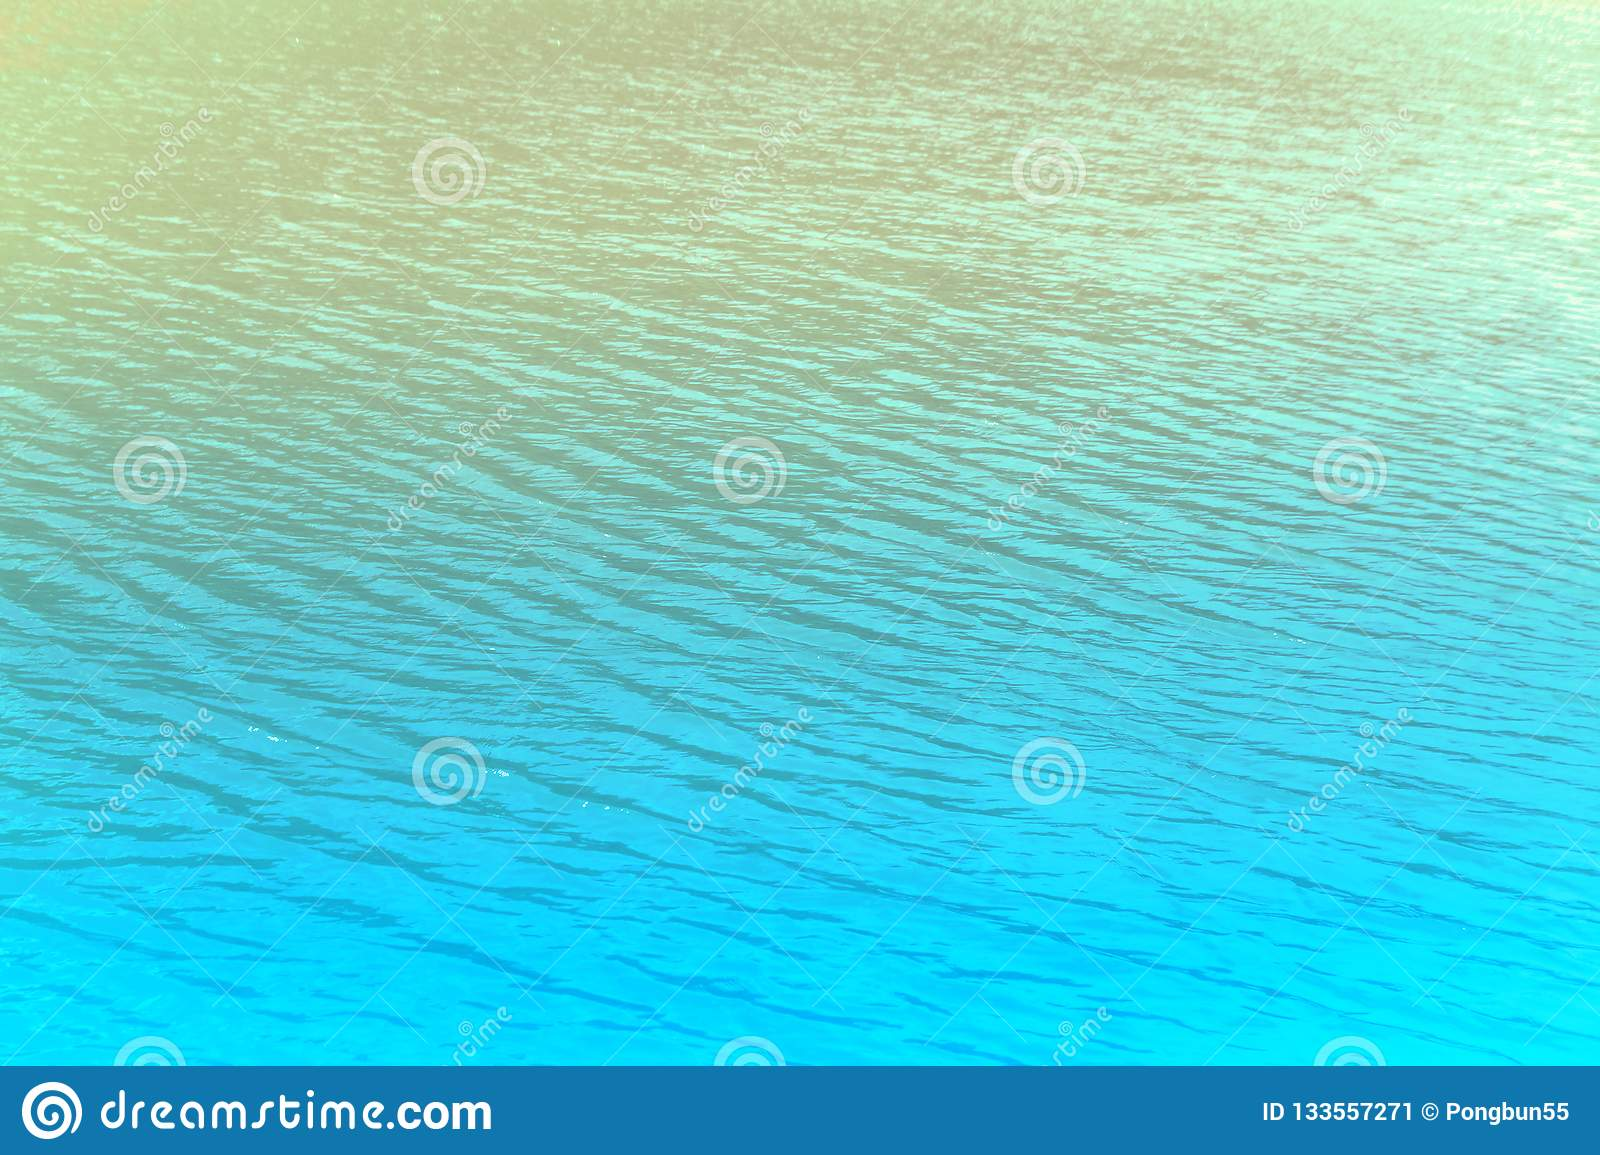 Blue Sea At Sunrise Relax Summer Nature Wallpaper Background Stock